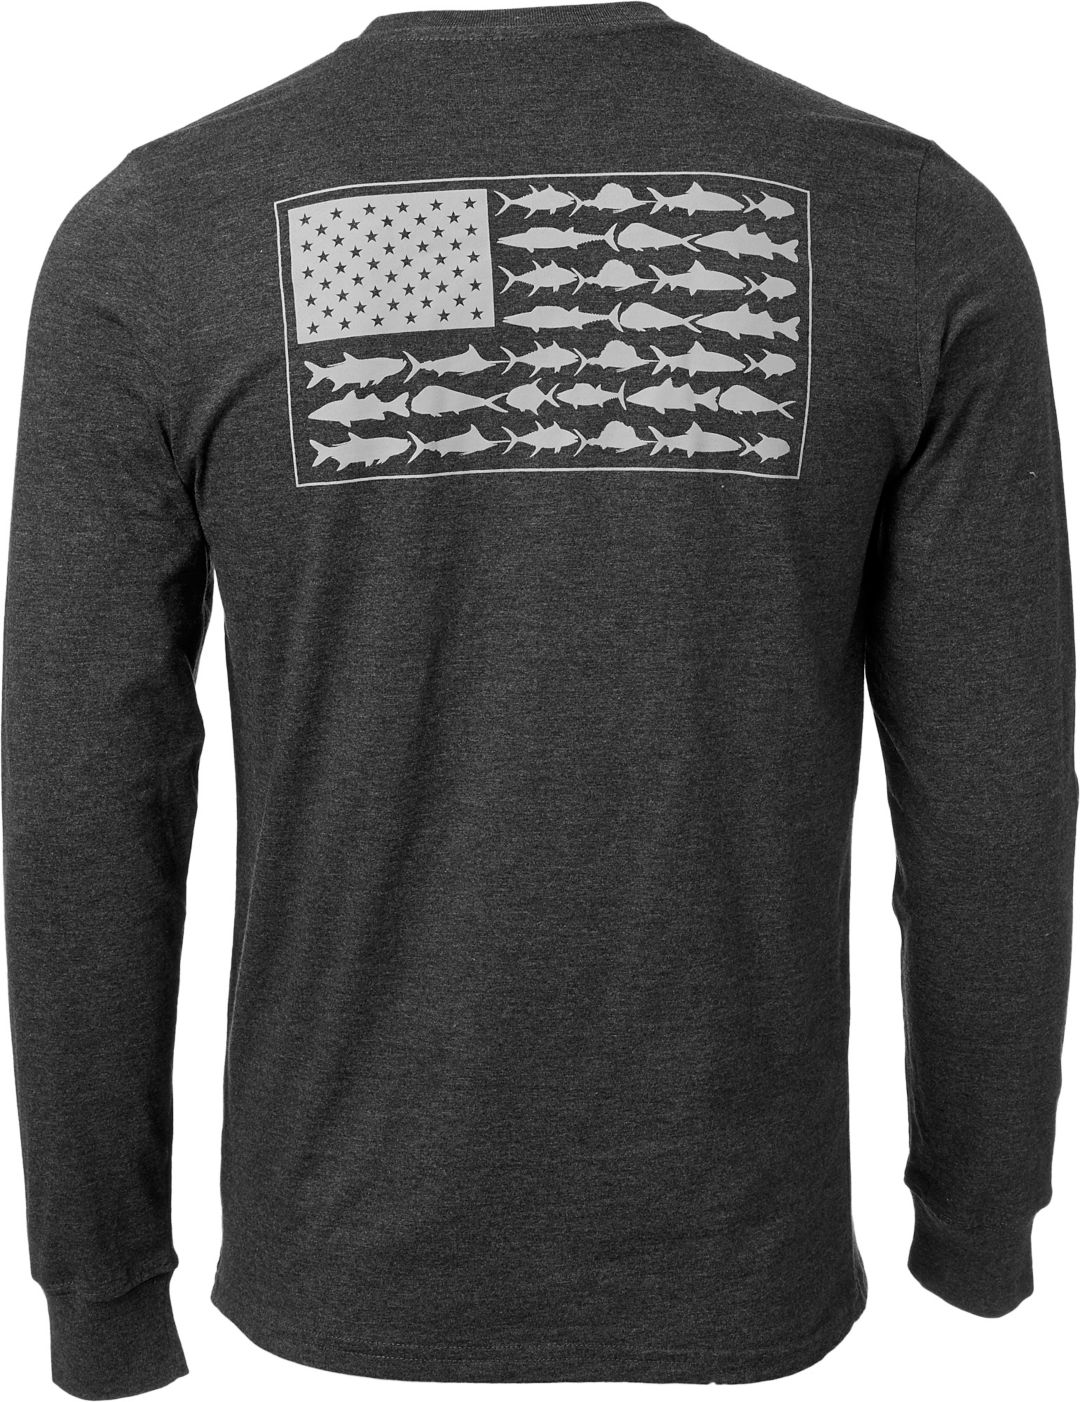 6bdd97808f92e Columbia Men s PFG Americana Saltwater Fish Flag Long Sleeve Shirt ...